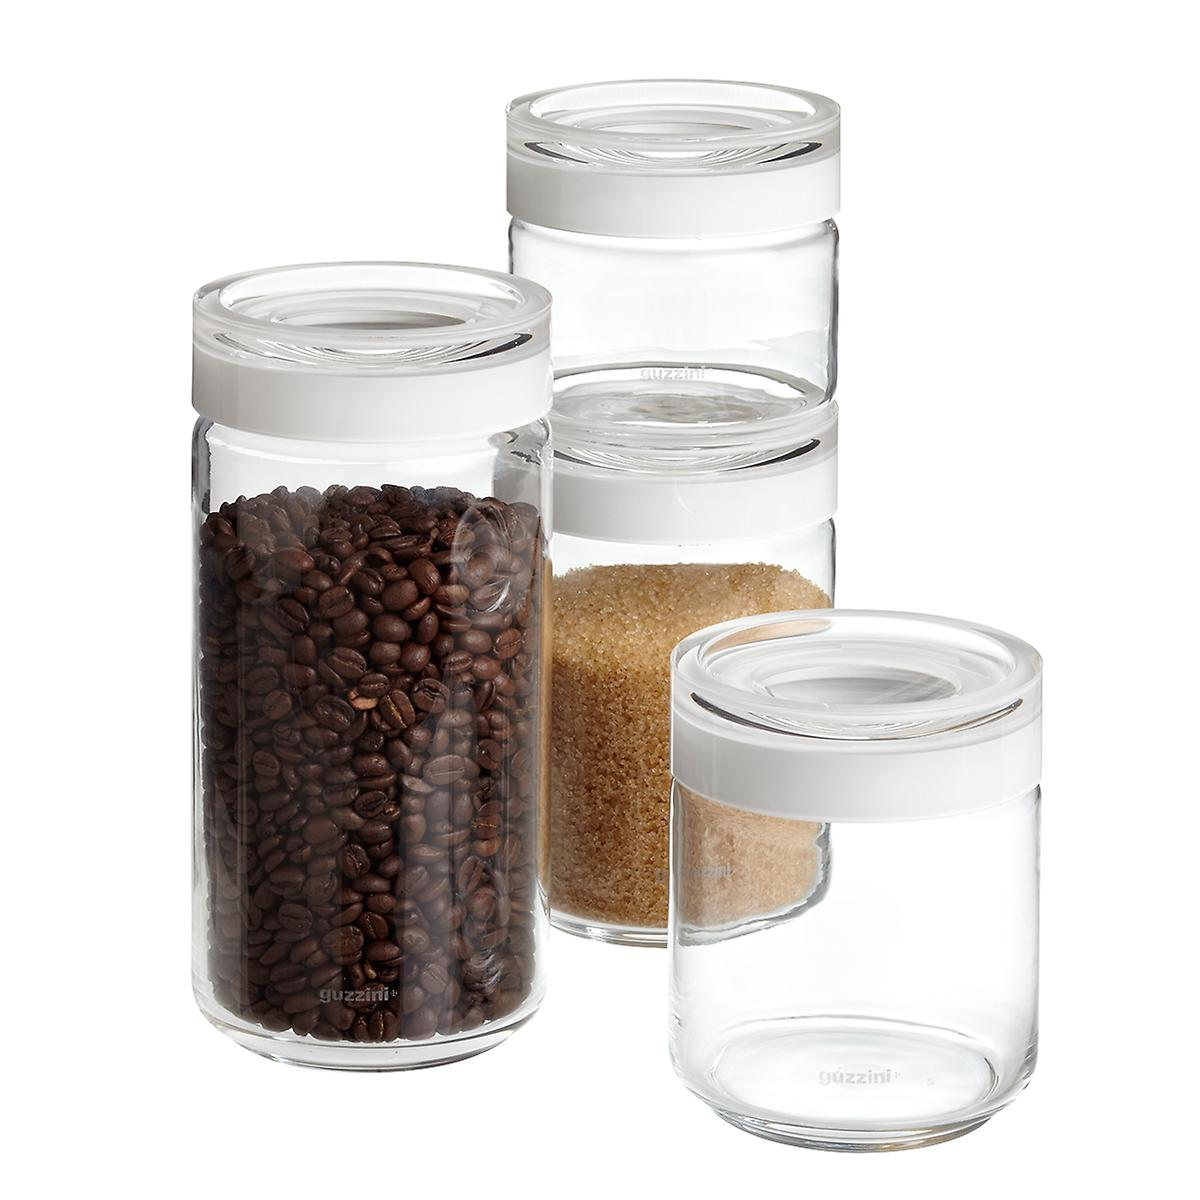 canisters canister sets kitchen canisters glass canisters blanca glass canisters by guzzini